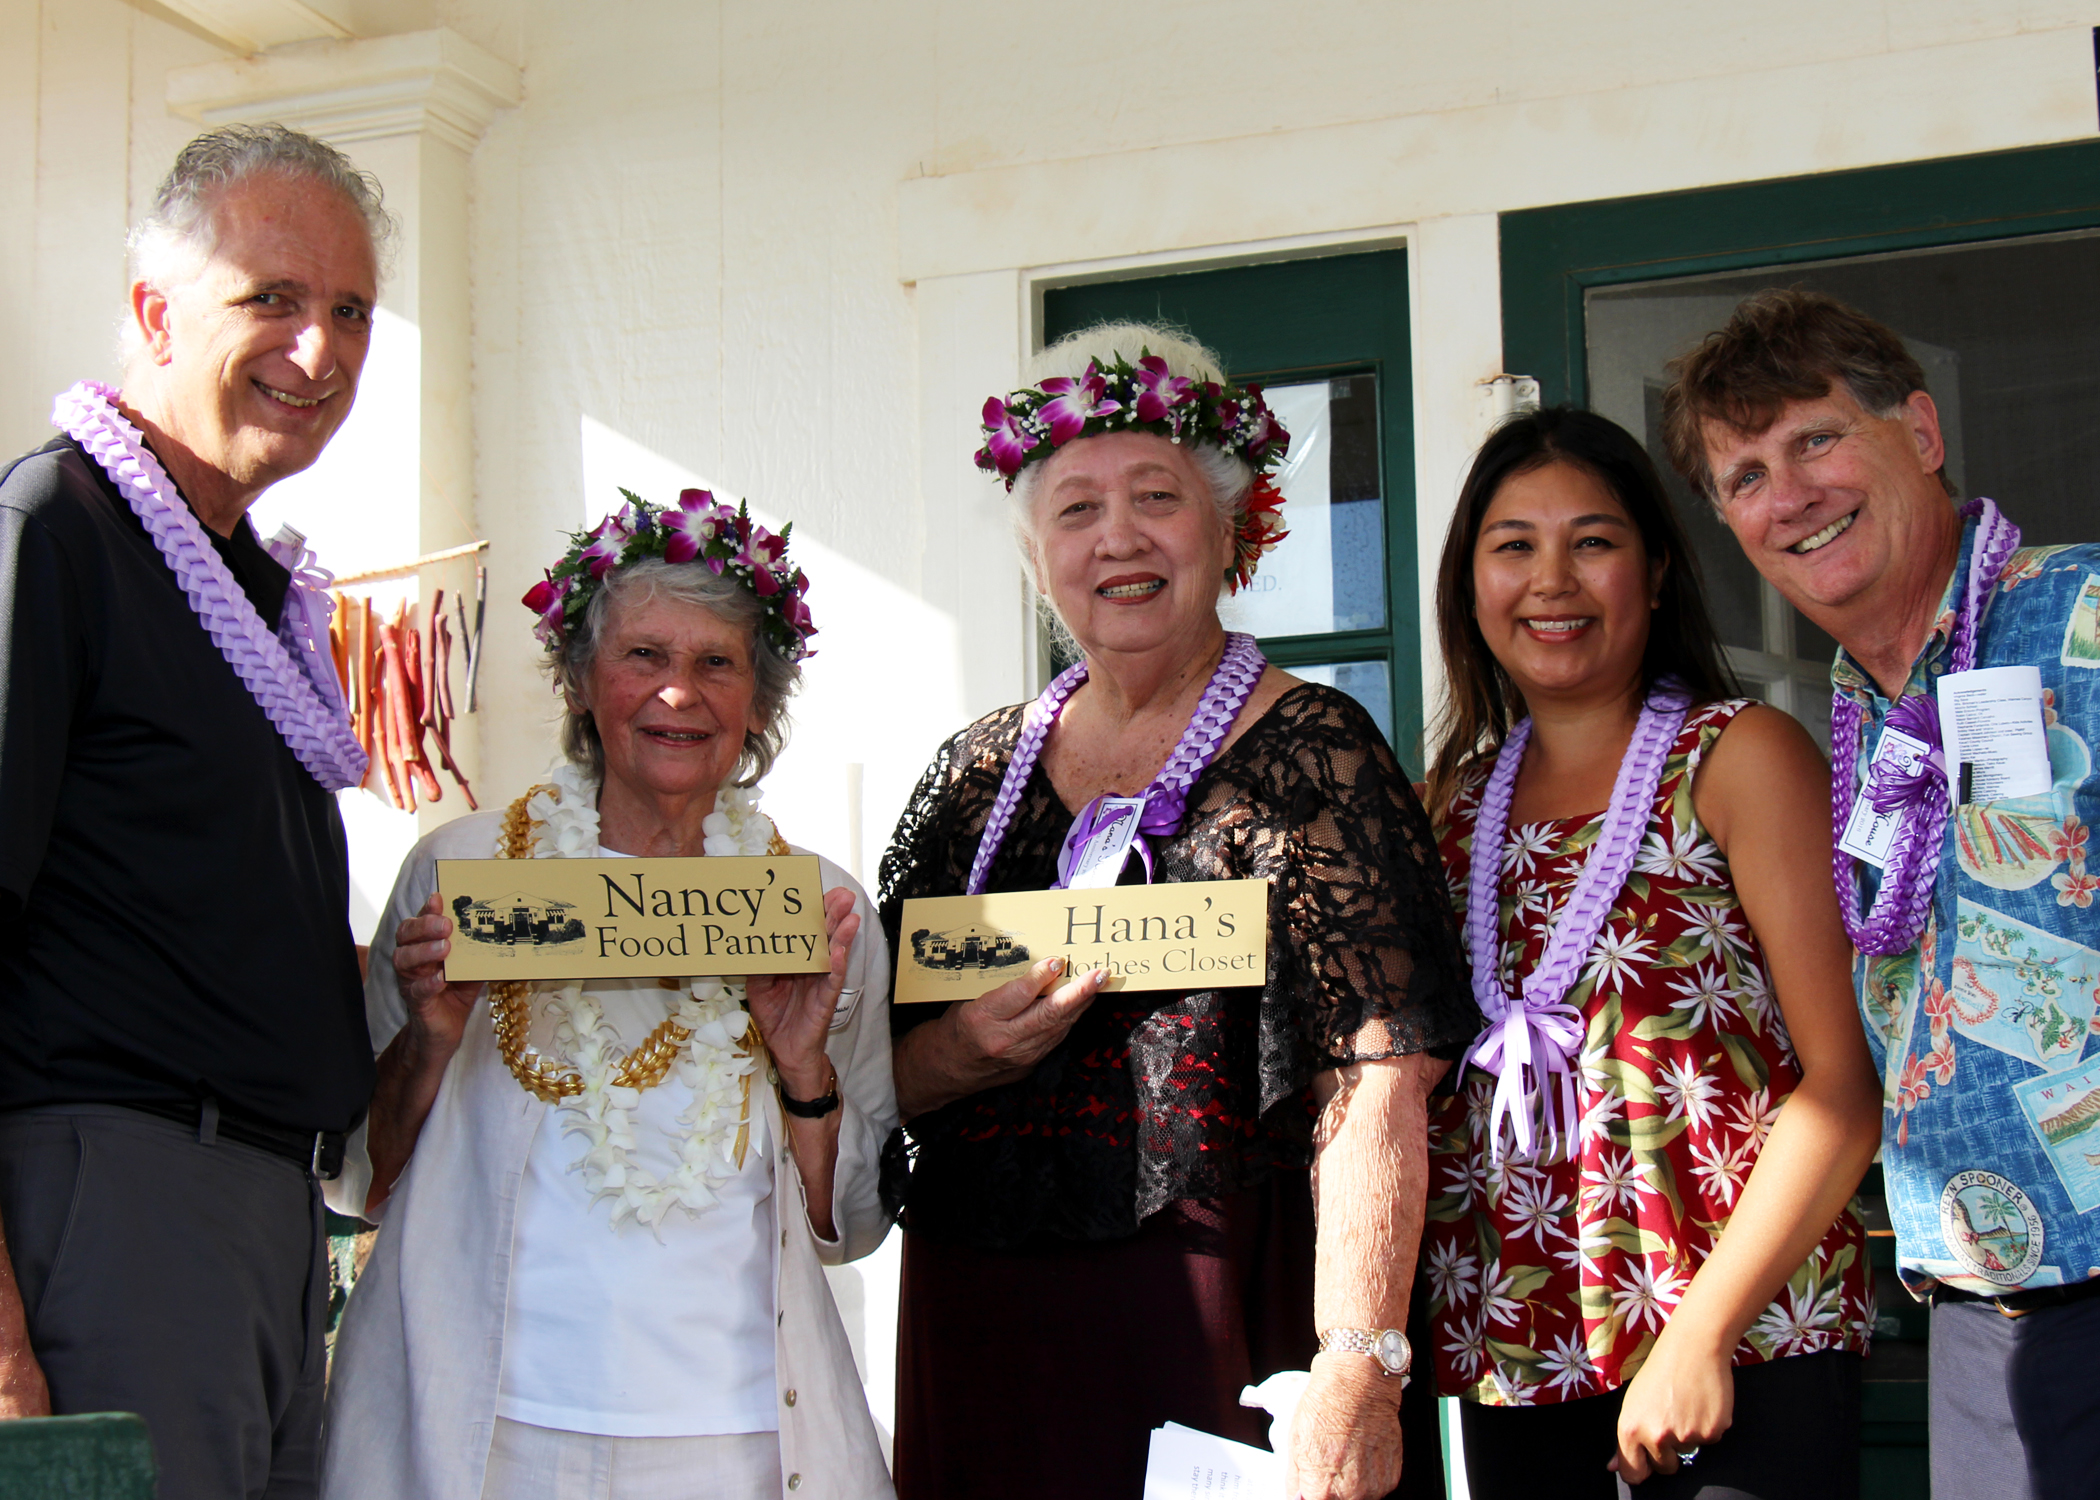 "Nana's House Co-Founder Nancy Golden (2nd from left) & Hana Montgomery (3rd from left) are presented with plaques renaming the food pantry & clothes closet to ""Nana's Food Pantry"" & ""Hana's Clothes Closet,"" respectively. Also in the photo (L to R) William Harrington (Kaua'i Family Centers Director), Novelyn Hinazumi (Director of Kaua'i Programs), & Howard Garval (President & CEO)."